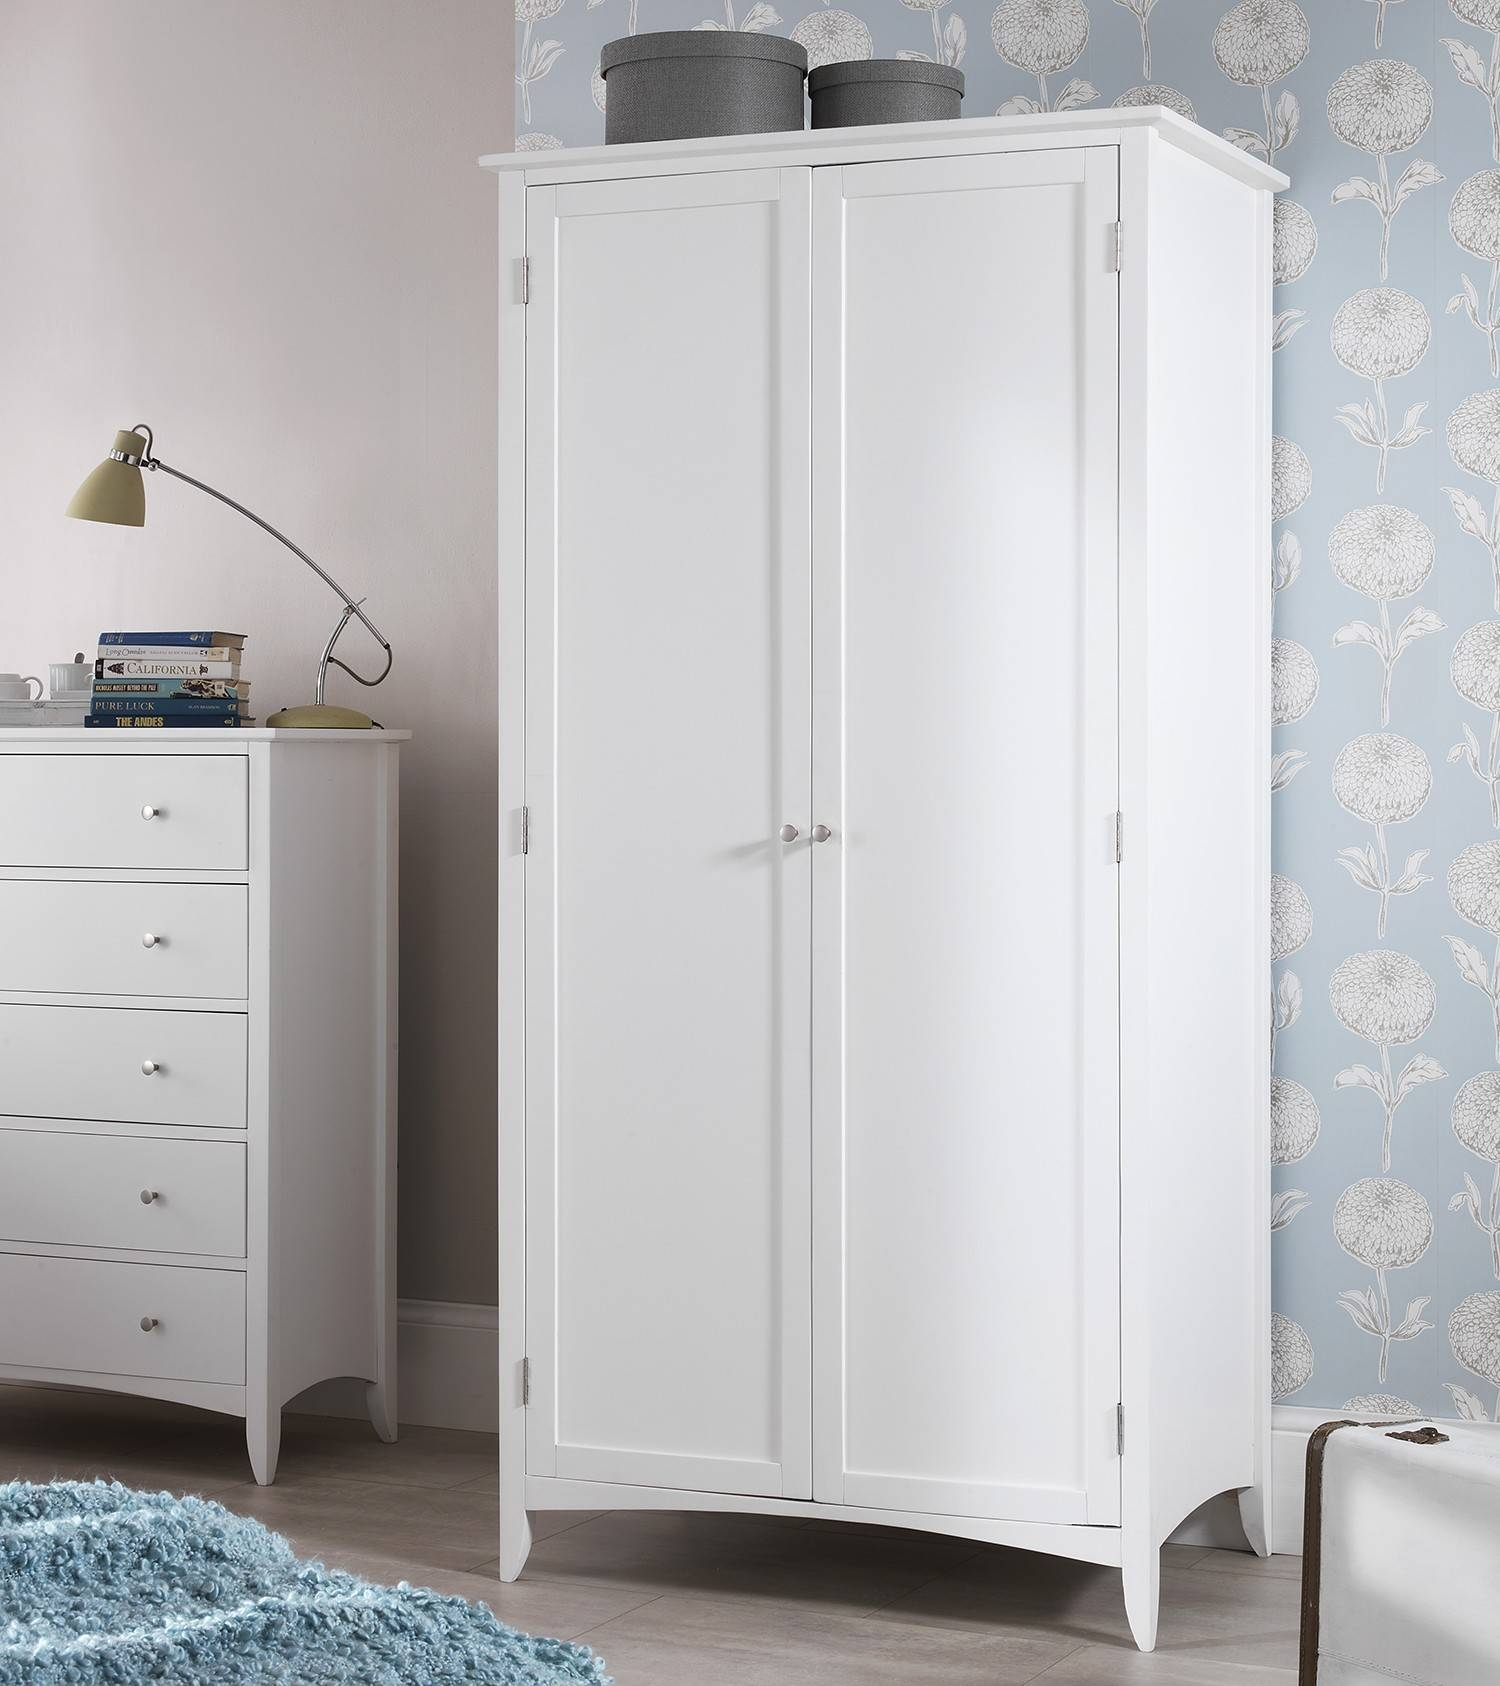 Edward Hopper White Double Wardrober | Bedroom Furniture Direct within Double Rail White Wardrobes (Image 6 of 21)